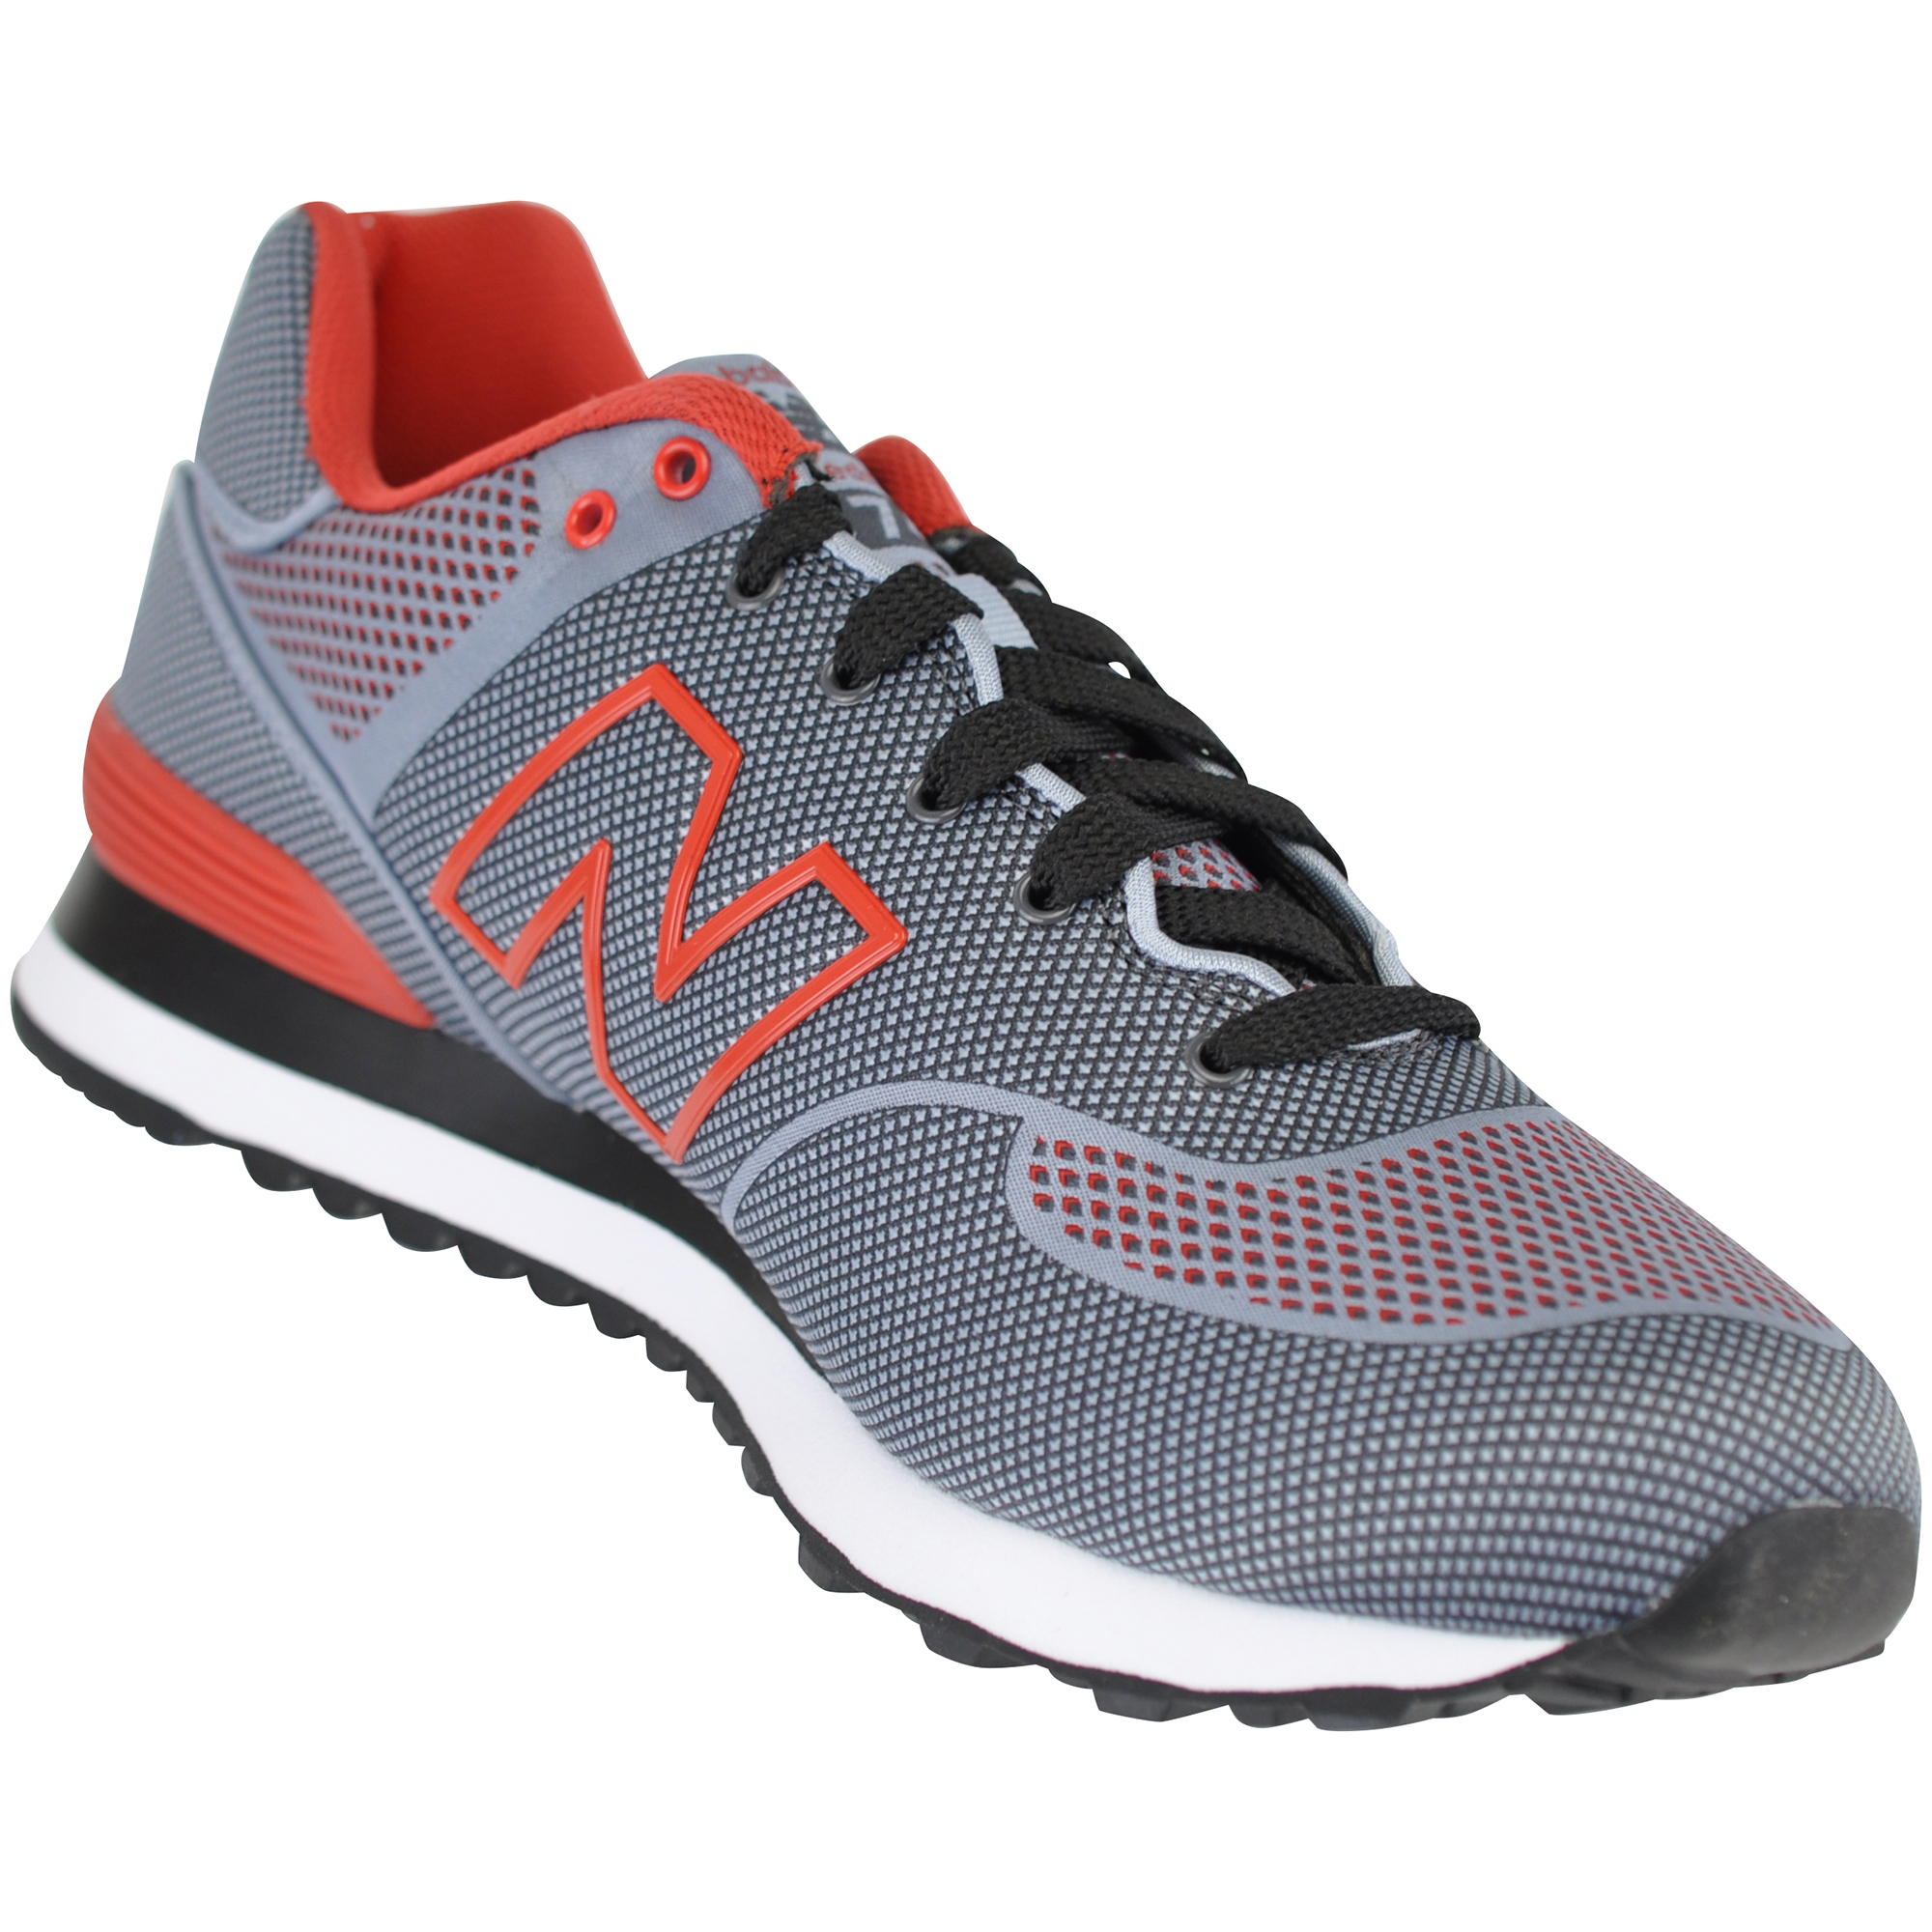 new balance ml574 m574 m373 410 576 577 wl574 men women running shoes ebay. Black Bedroom Furniture Sets. Home Design Ideas